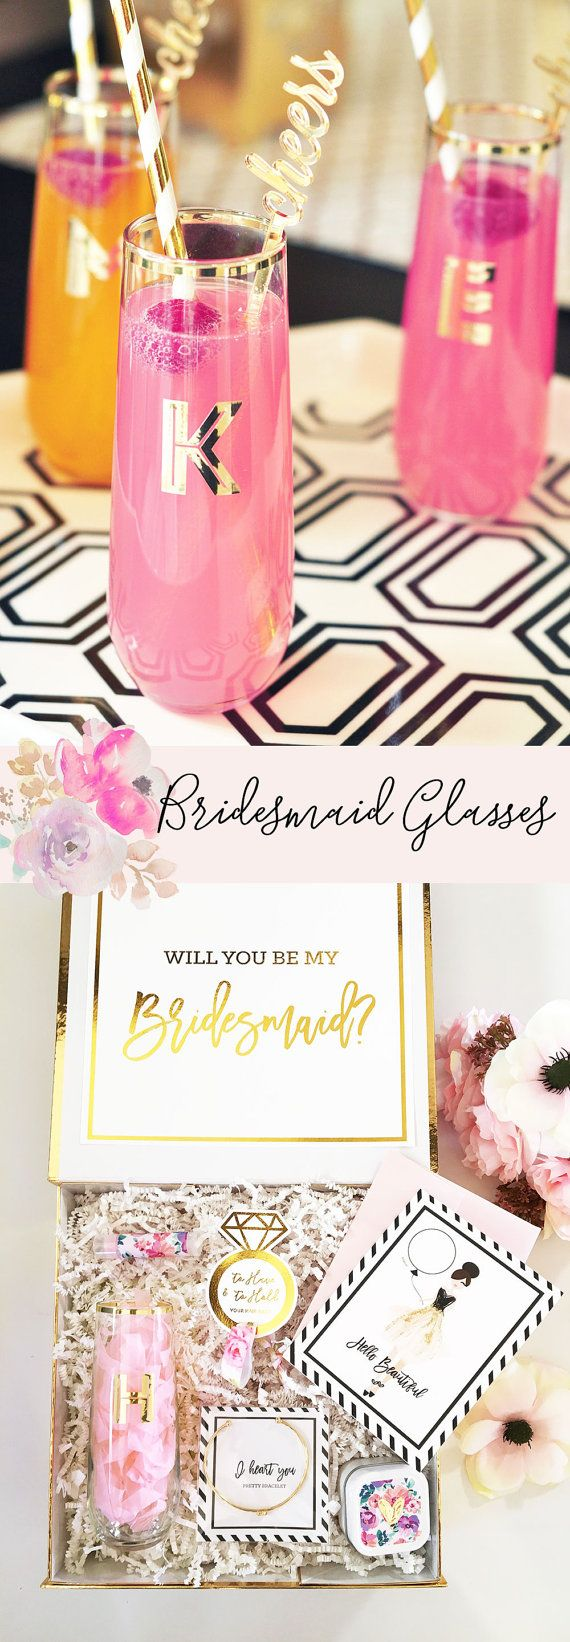 Personalized Glasses Bridal Party Glasses Monogram by ModParty